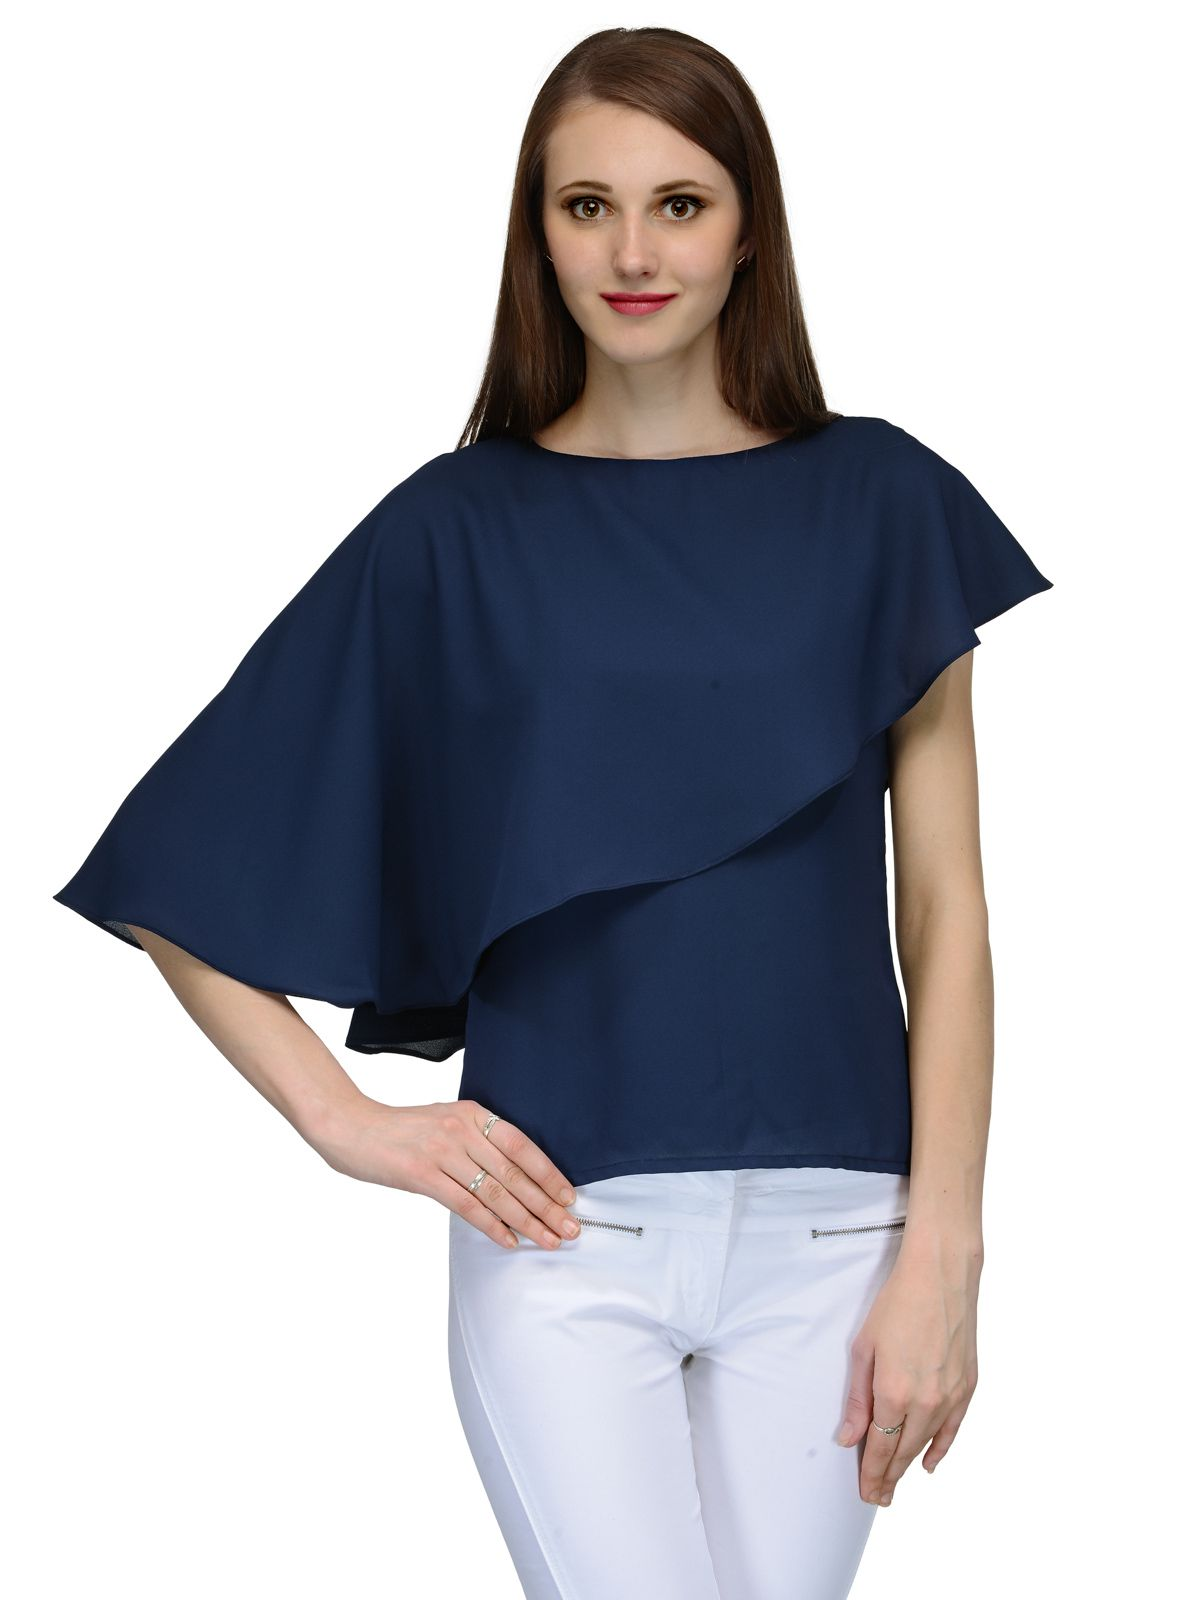 6ae73c90d17c4e Natty India Navy Georgette Tops - Buy Natty India Navy Georgette Tops Online  at Best Prices in India on Snapdeal